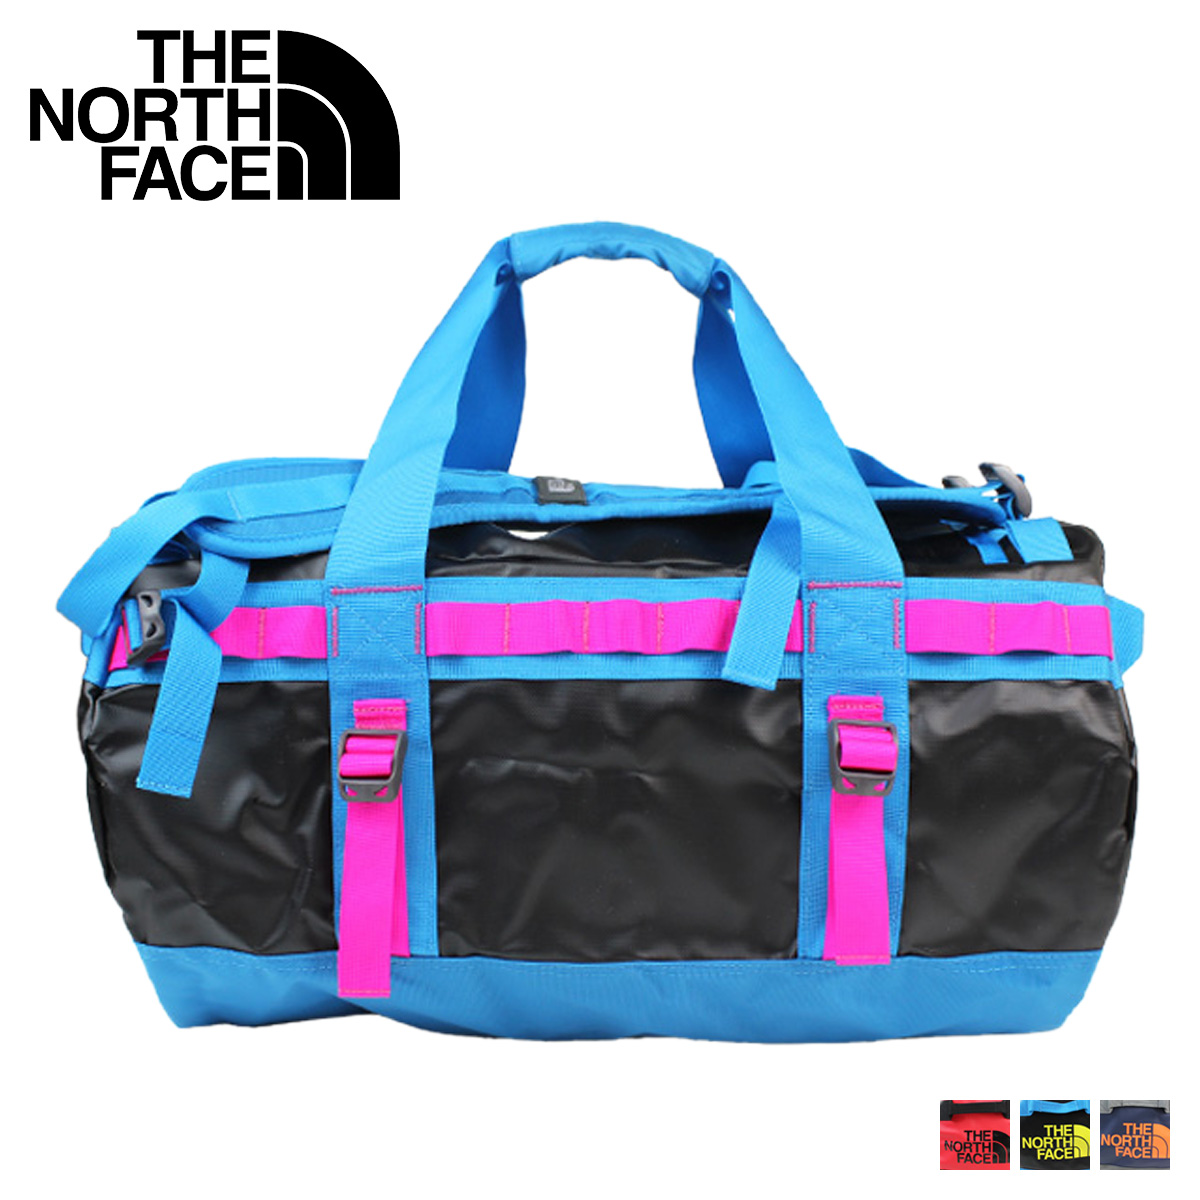 The north face THE NORTH FACE bags duffel bags men s women s Boston bag  2015 spring summer new 3 color ASTC BASE CAMP DUFFEL SMALL unisex  6 23 new  in ... d94bfa031